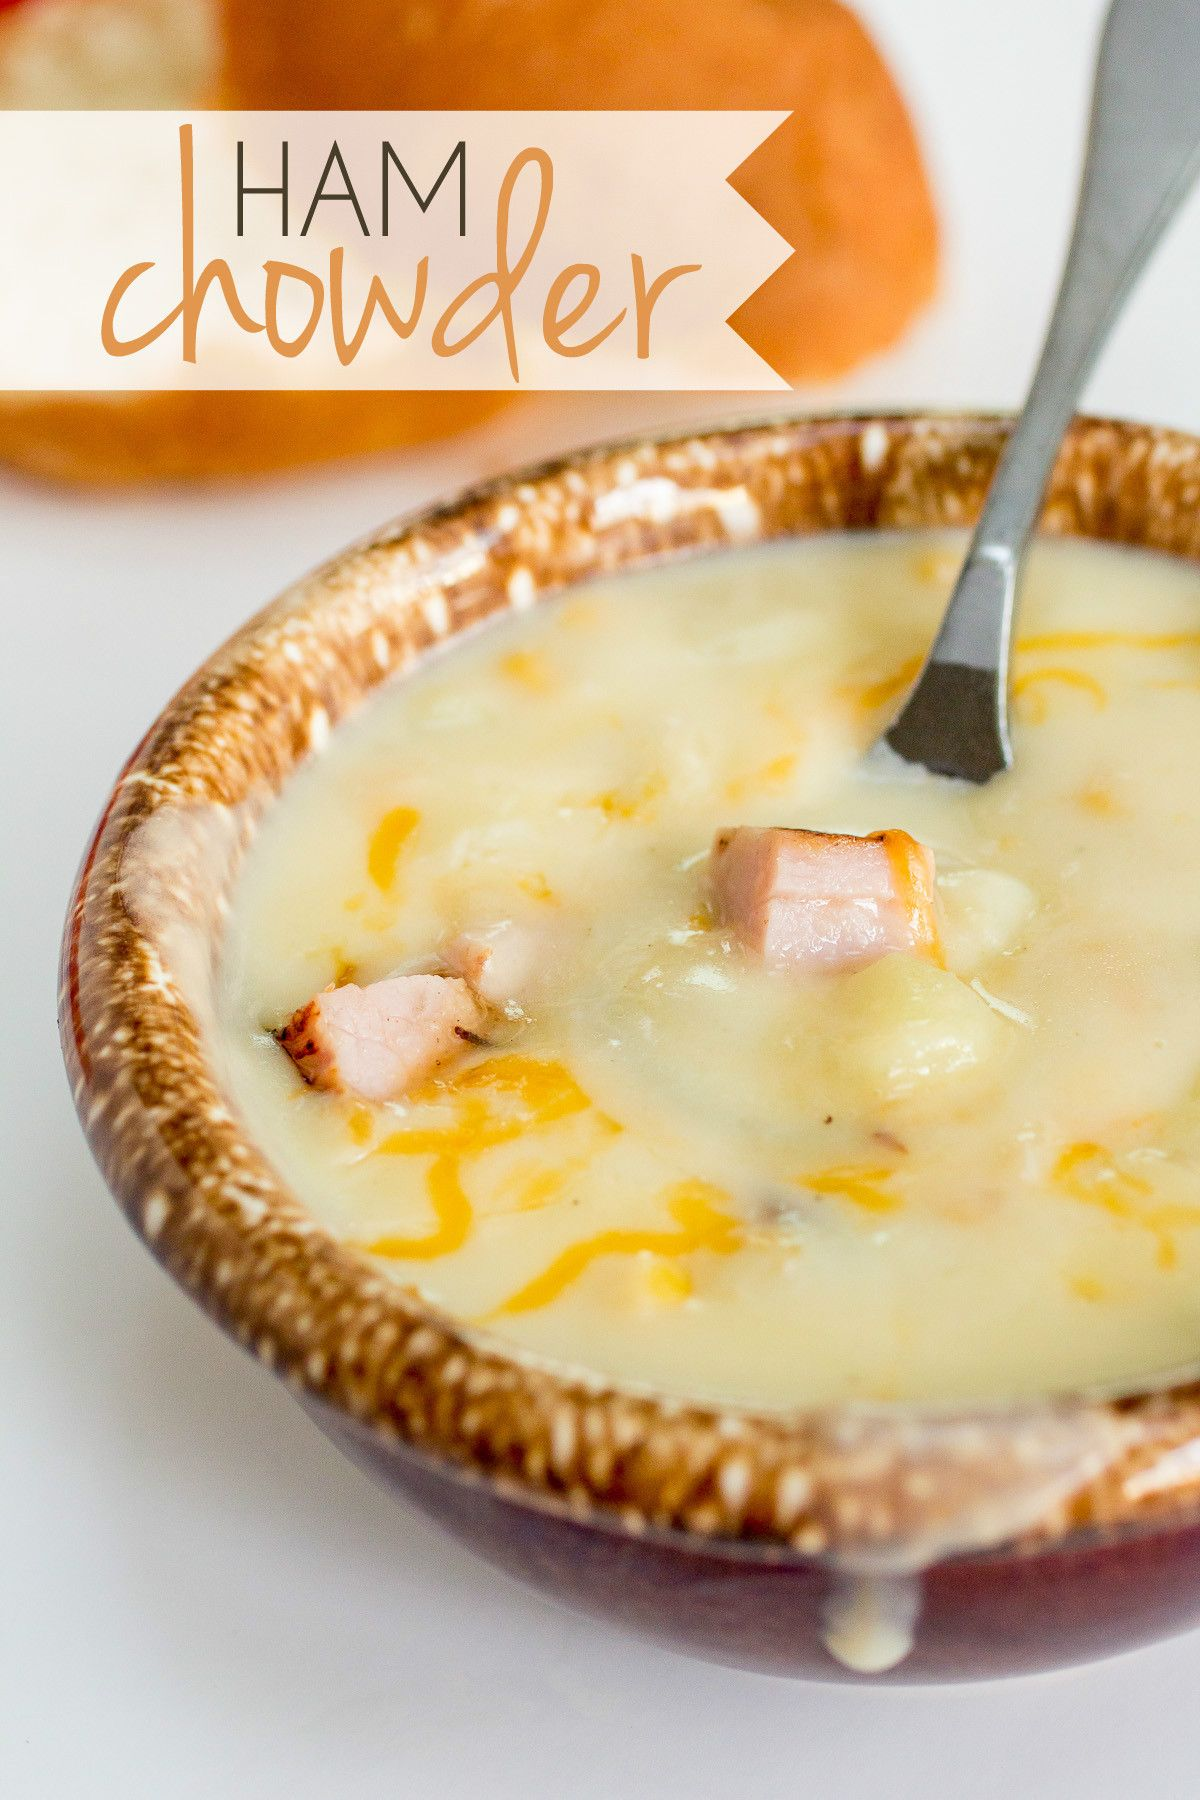 Awesome Zaycon ham chowder with potato and corn. Easy, fast, and delicious soup! // Order Ham? https://www.zayconfresh.com/products/pork/applewood-smoked-ham